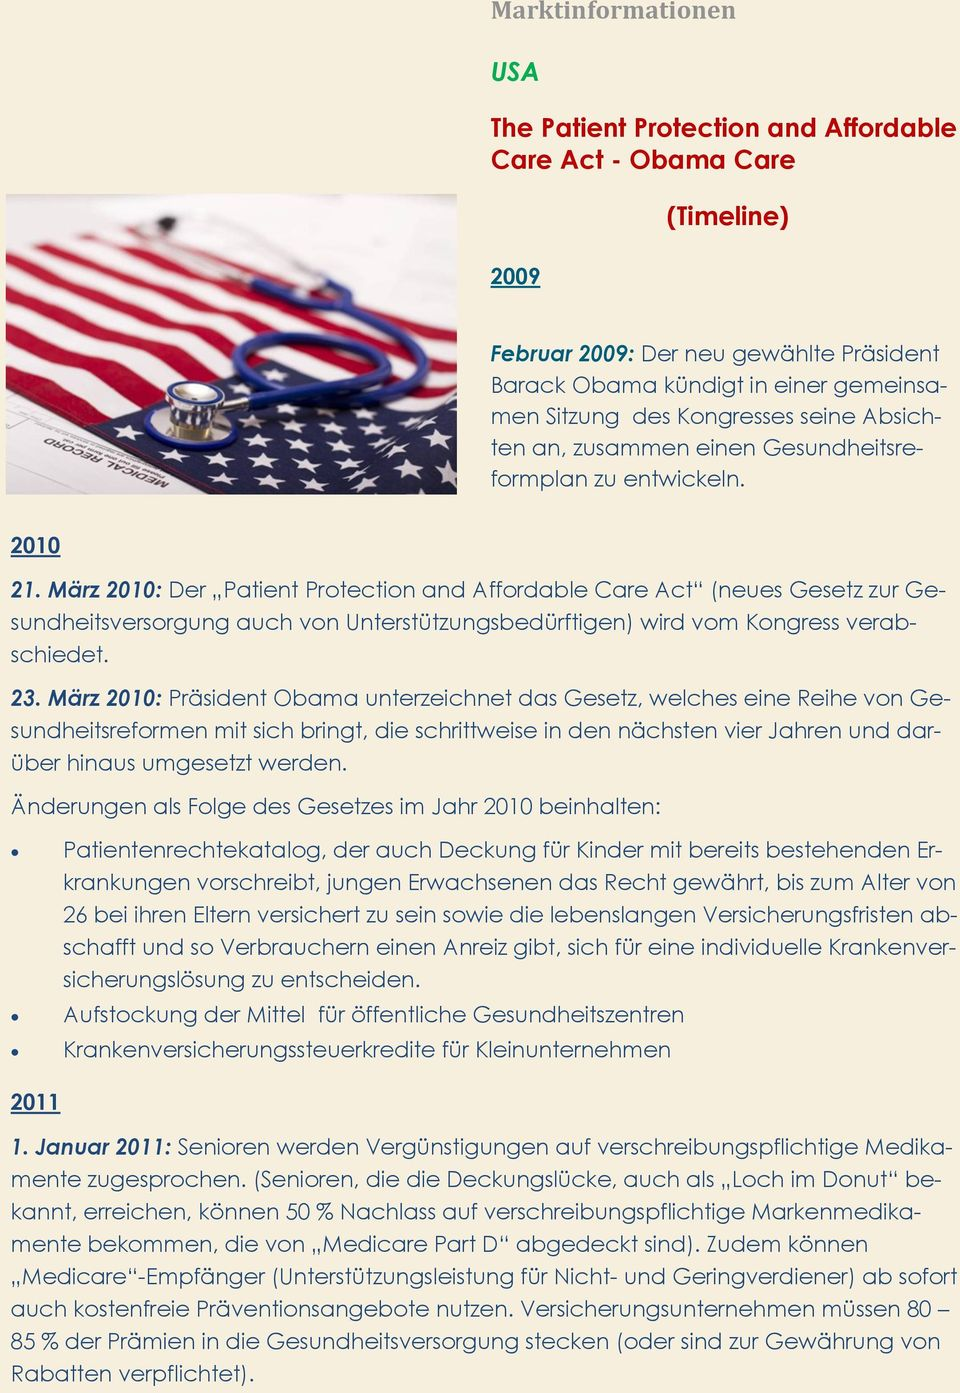 März 2010: Der Patient Protection and Affordable Care Act (neues Gesetz zur Gesundheitsversorgung auch von Unterstützungsbedürftigen) wird vom Kongress verabschiedet. 23.